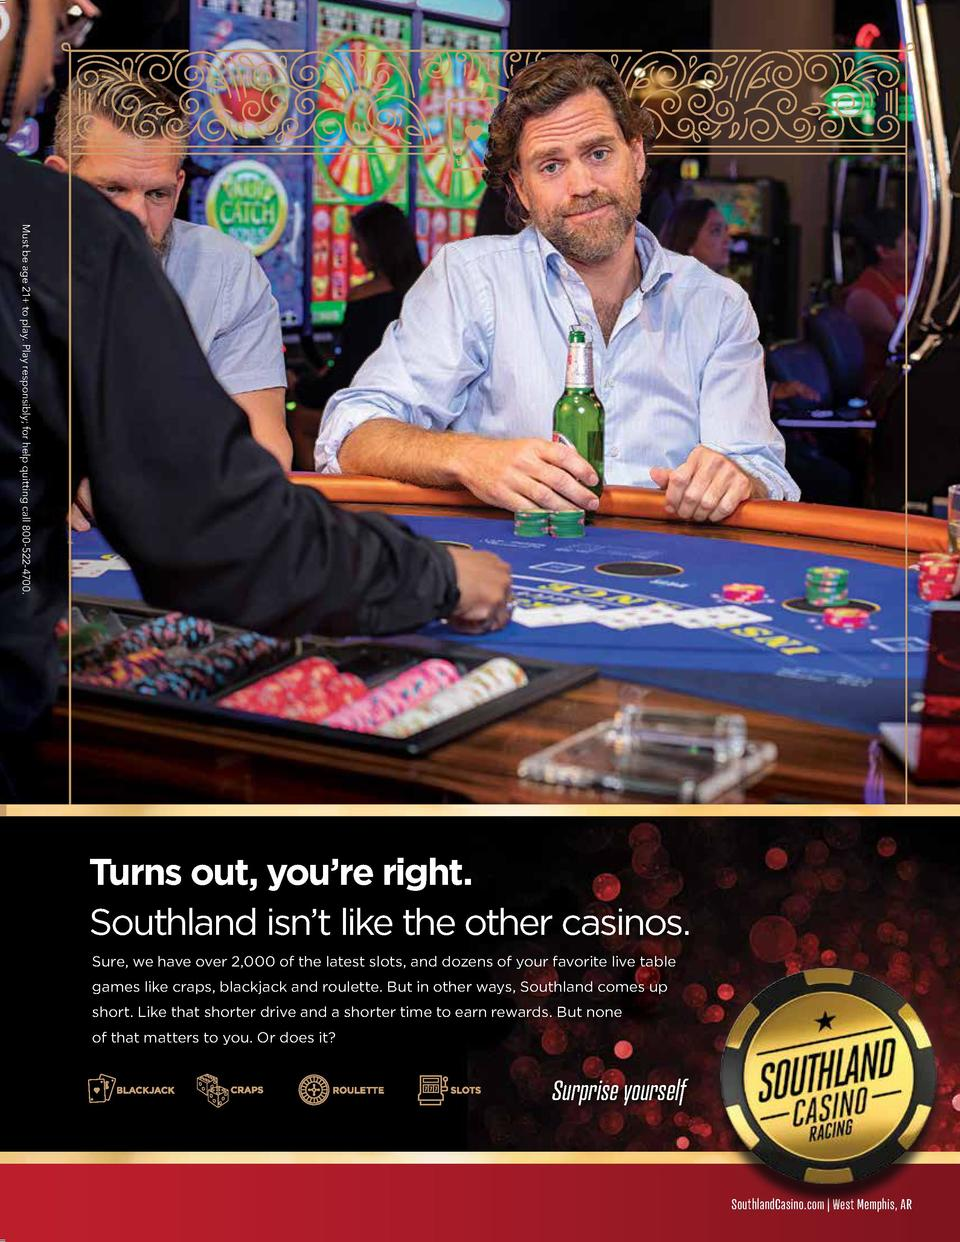 Must Must be age be age 21 21  to play. to play. PlayPlay responsibly  responsibly  for help for help quitting quitting ca...